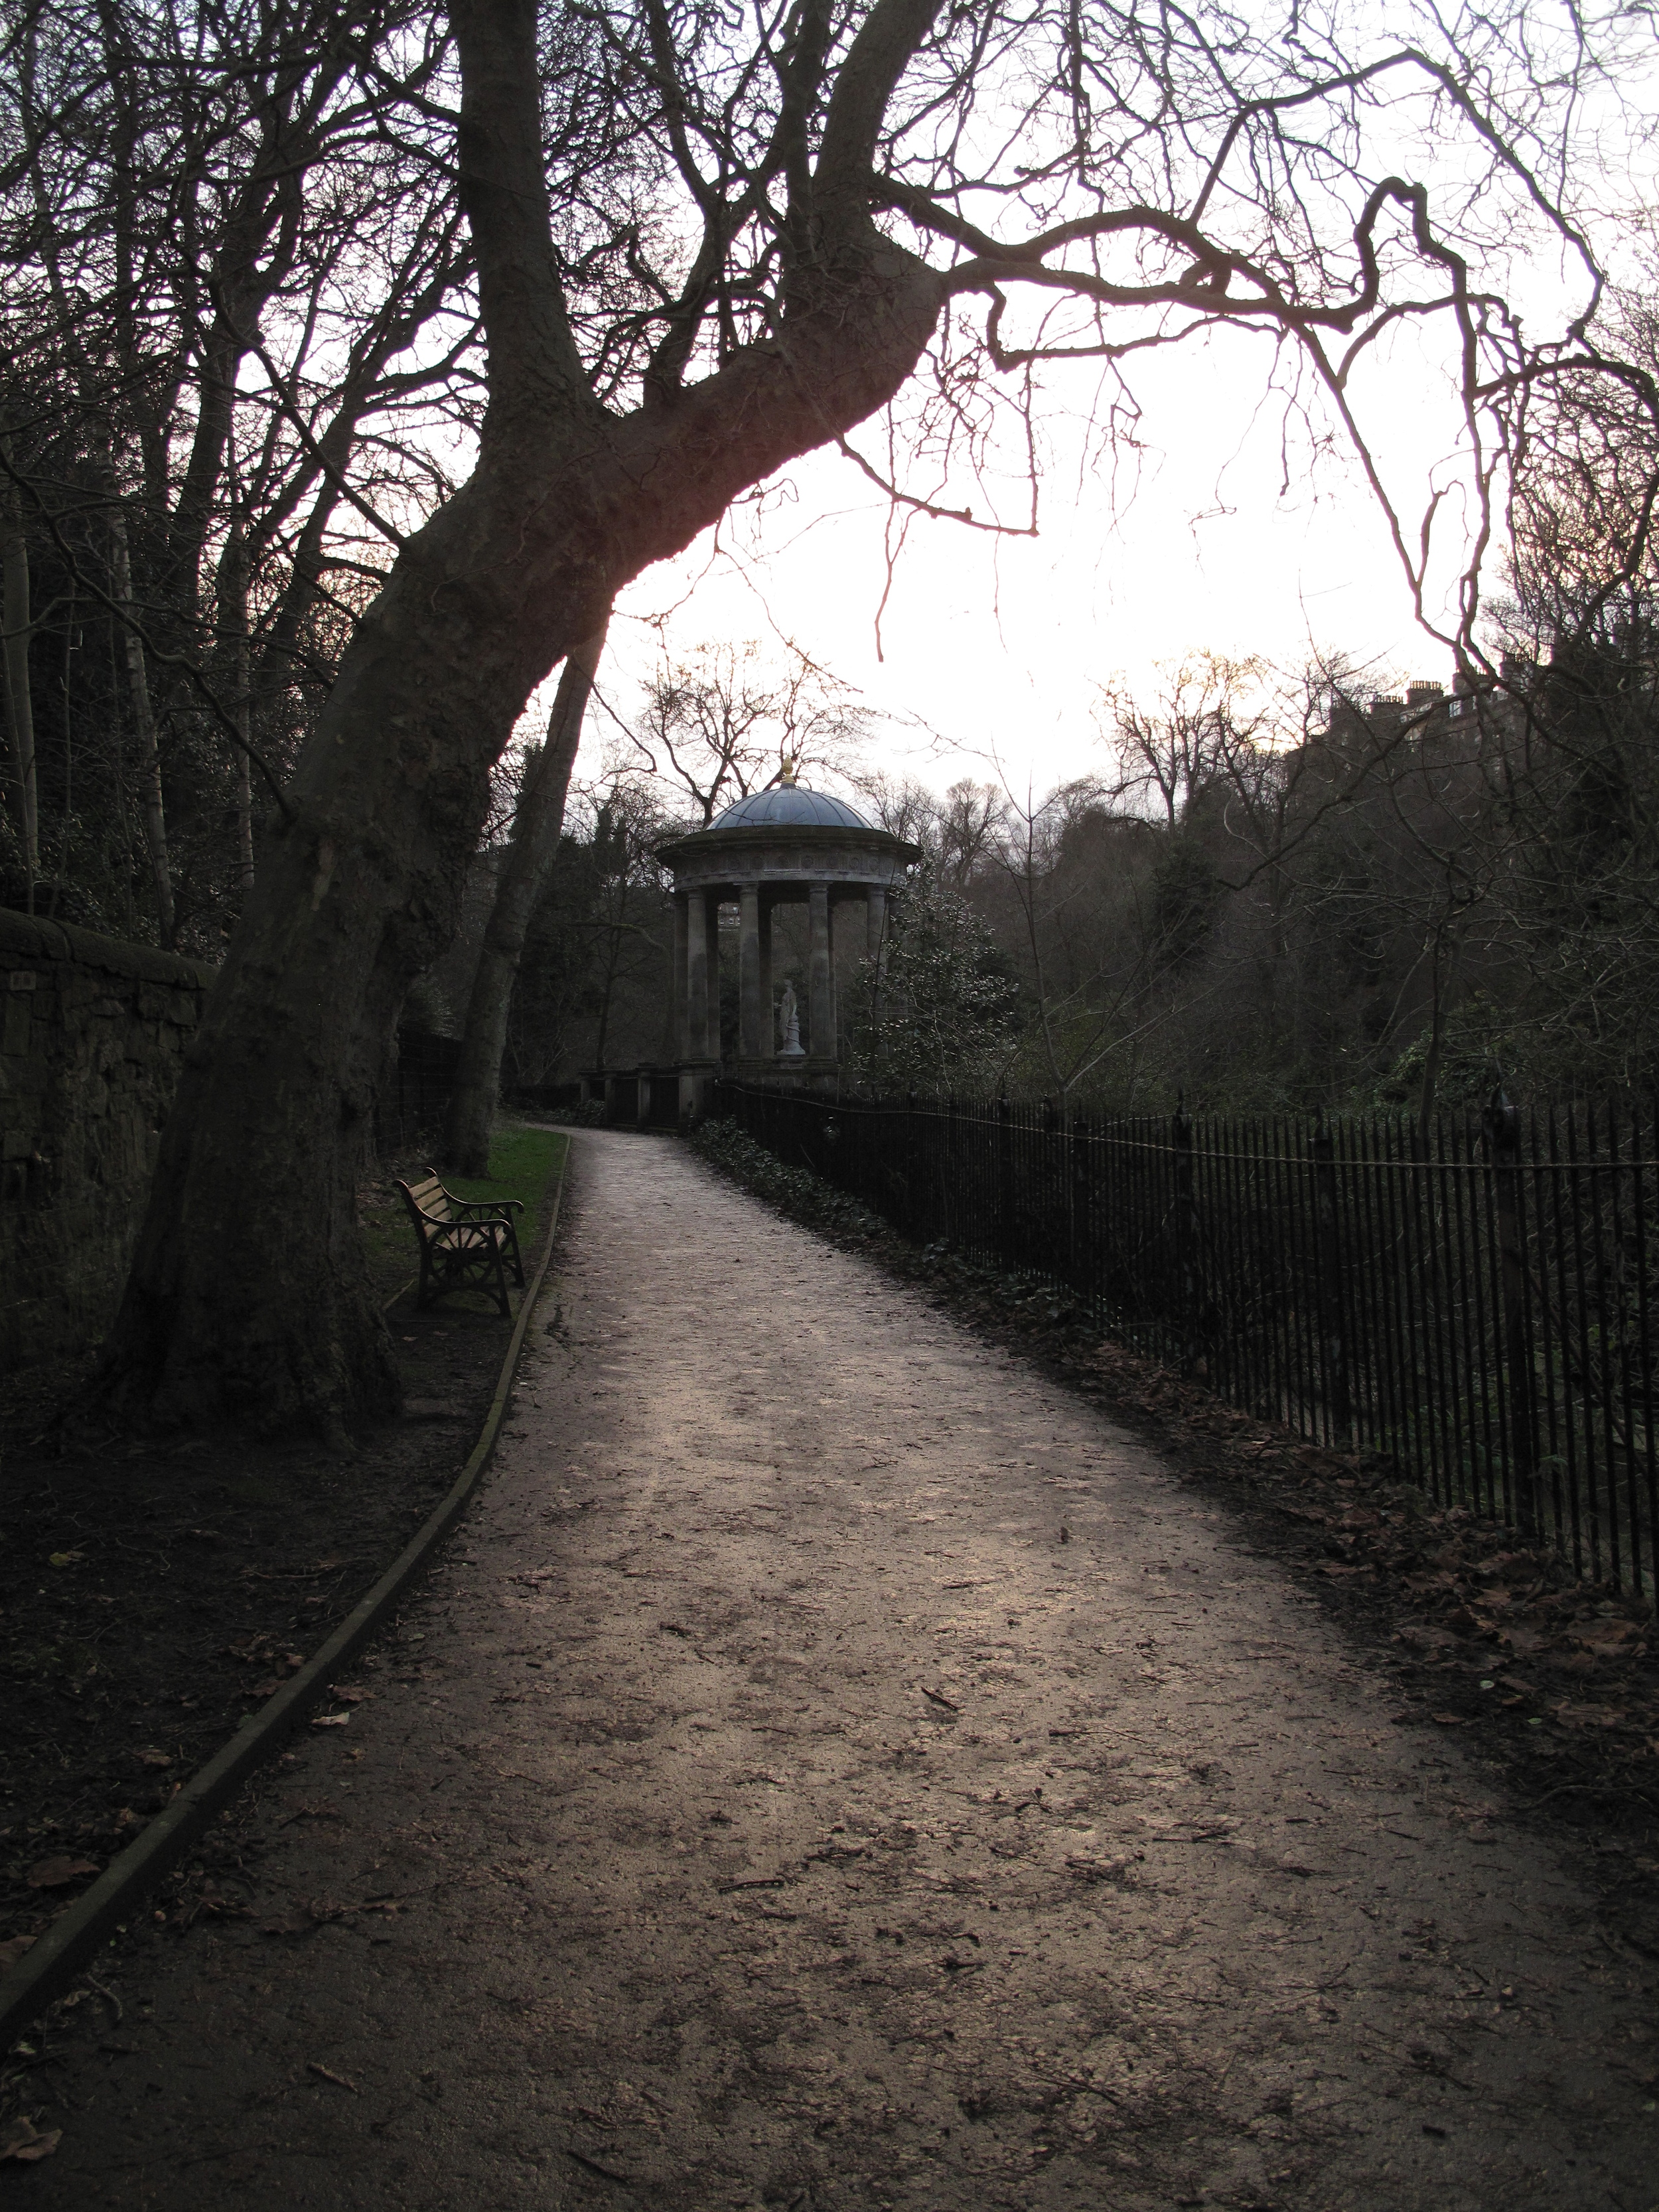 The Leith Walkway near Dean Village on a rainy day in winter.